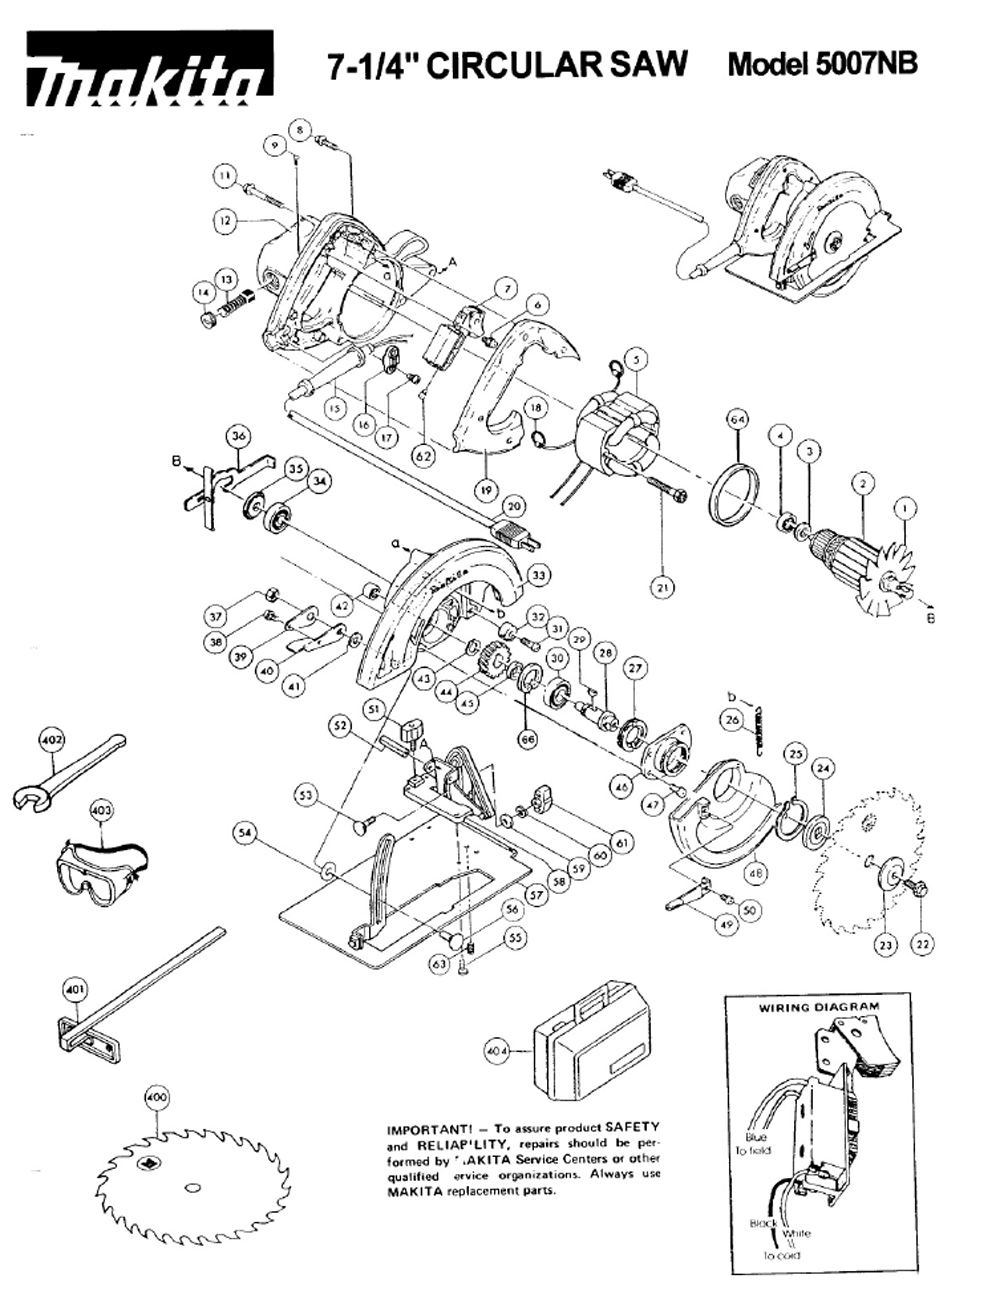 medium resolution of pin by brant powell on tech illustrations electric saw makita tools makita 9227c wiring diagram makita wiring diagram